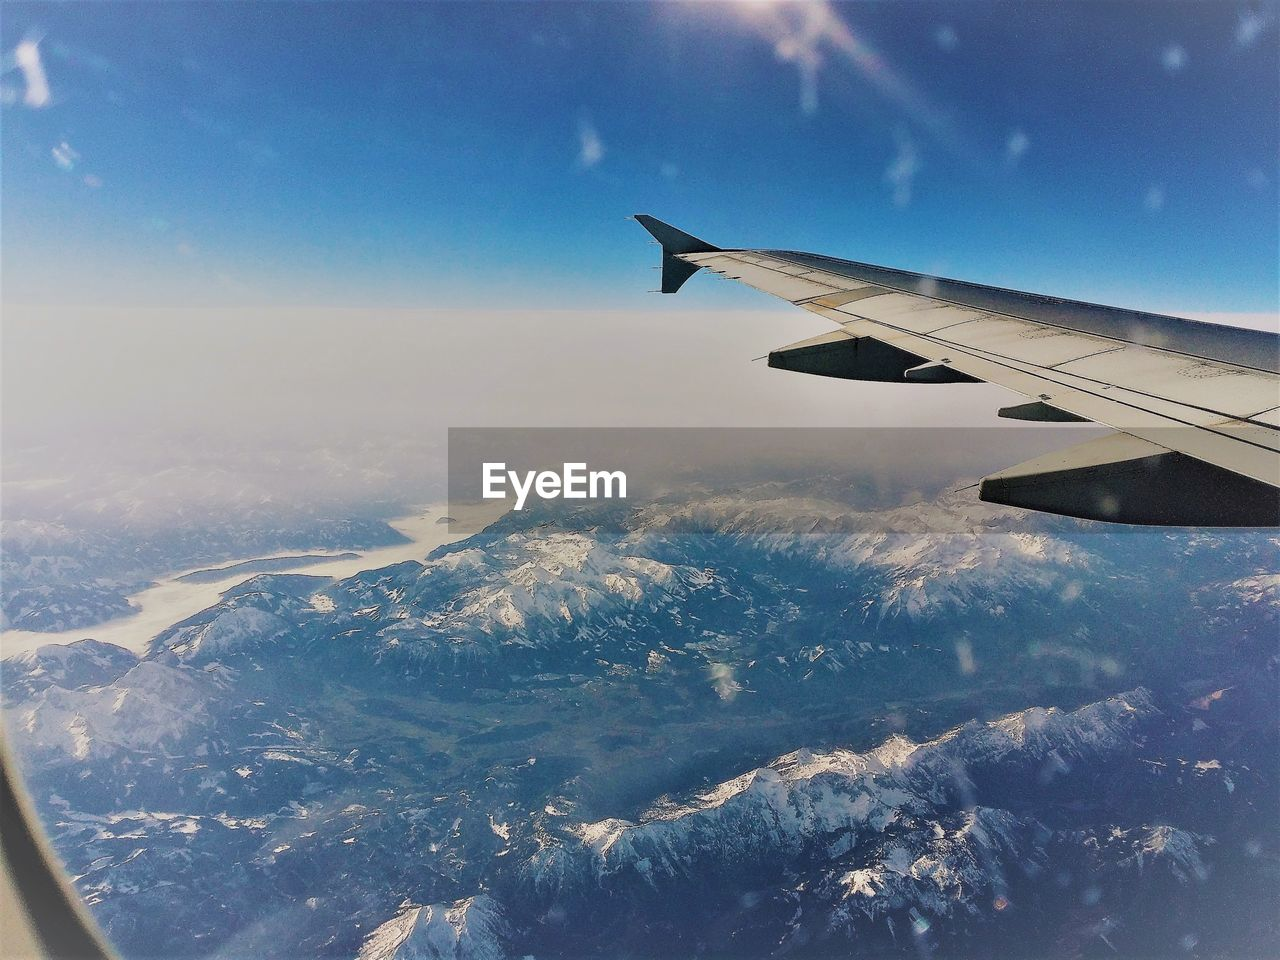 AERIAL VIEW OF AIRCRAFT WING OVER SNOWCAPPED LANDSCAPE AGAINST SKY